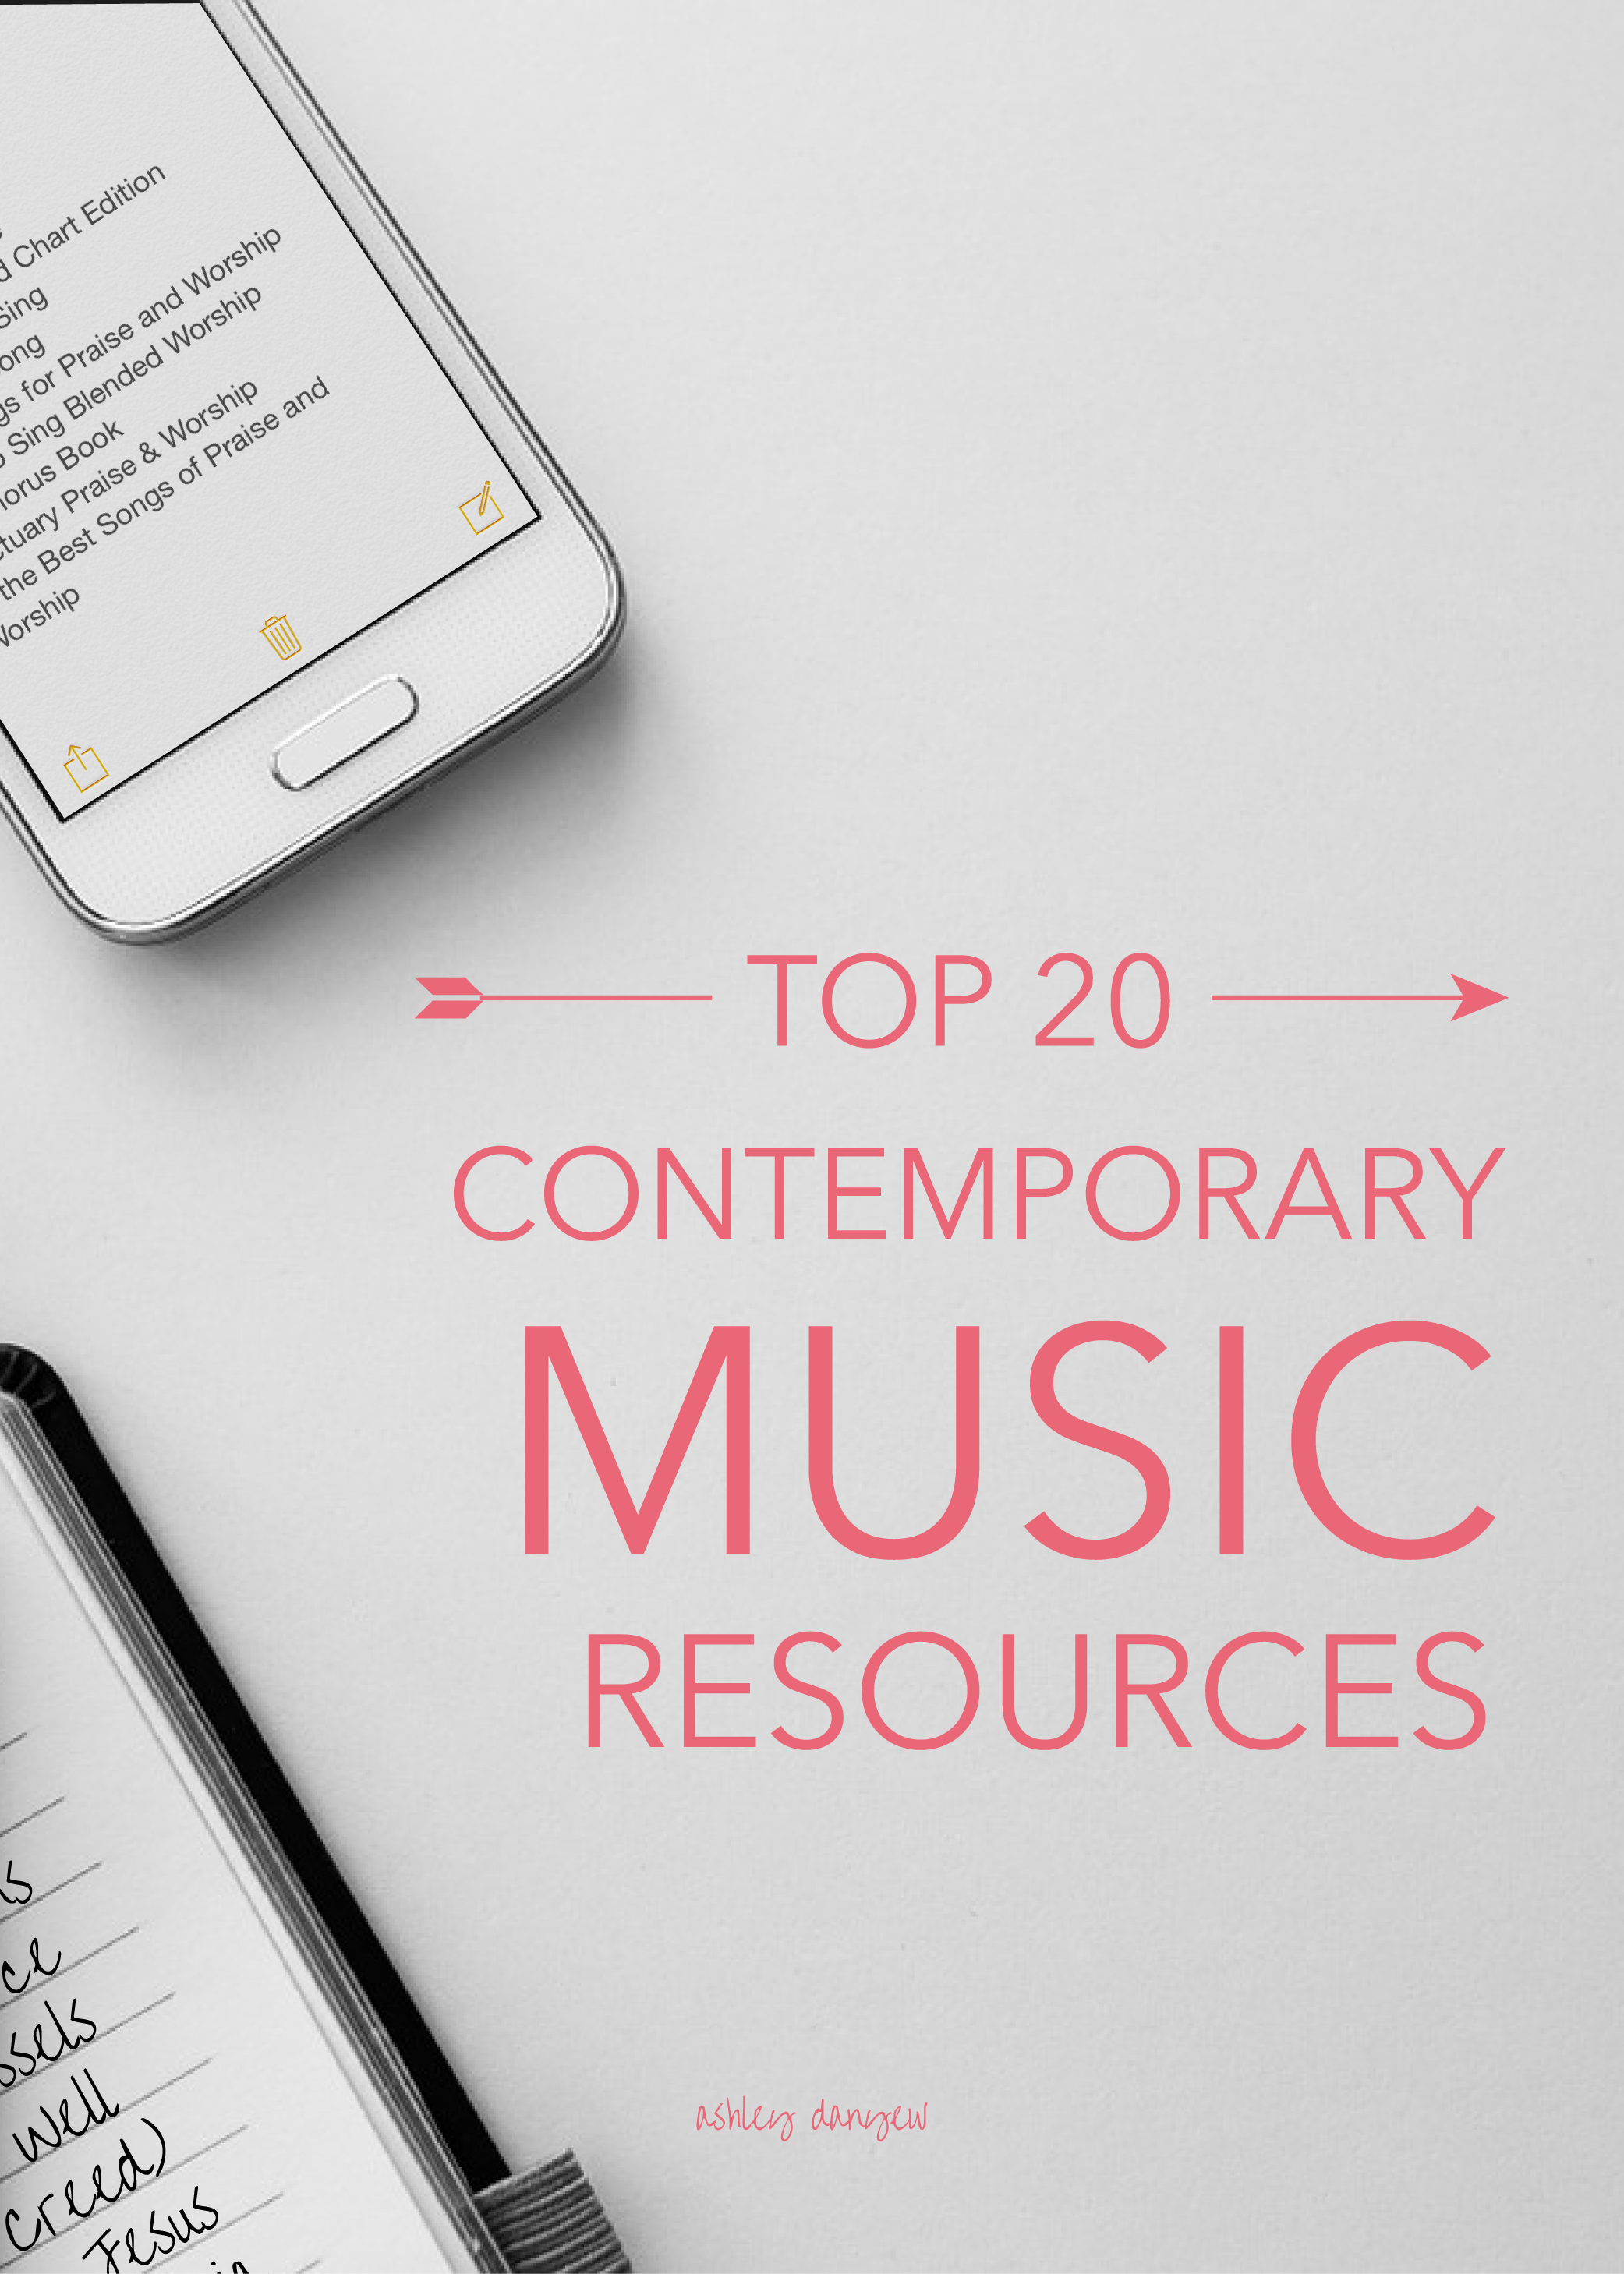 Top-20-Contemporary-Music-Resources-01.png